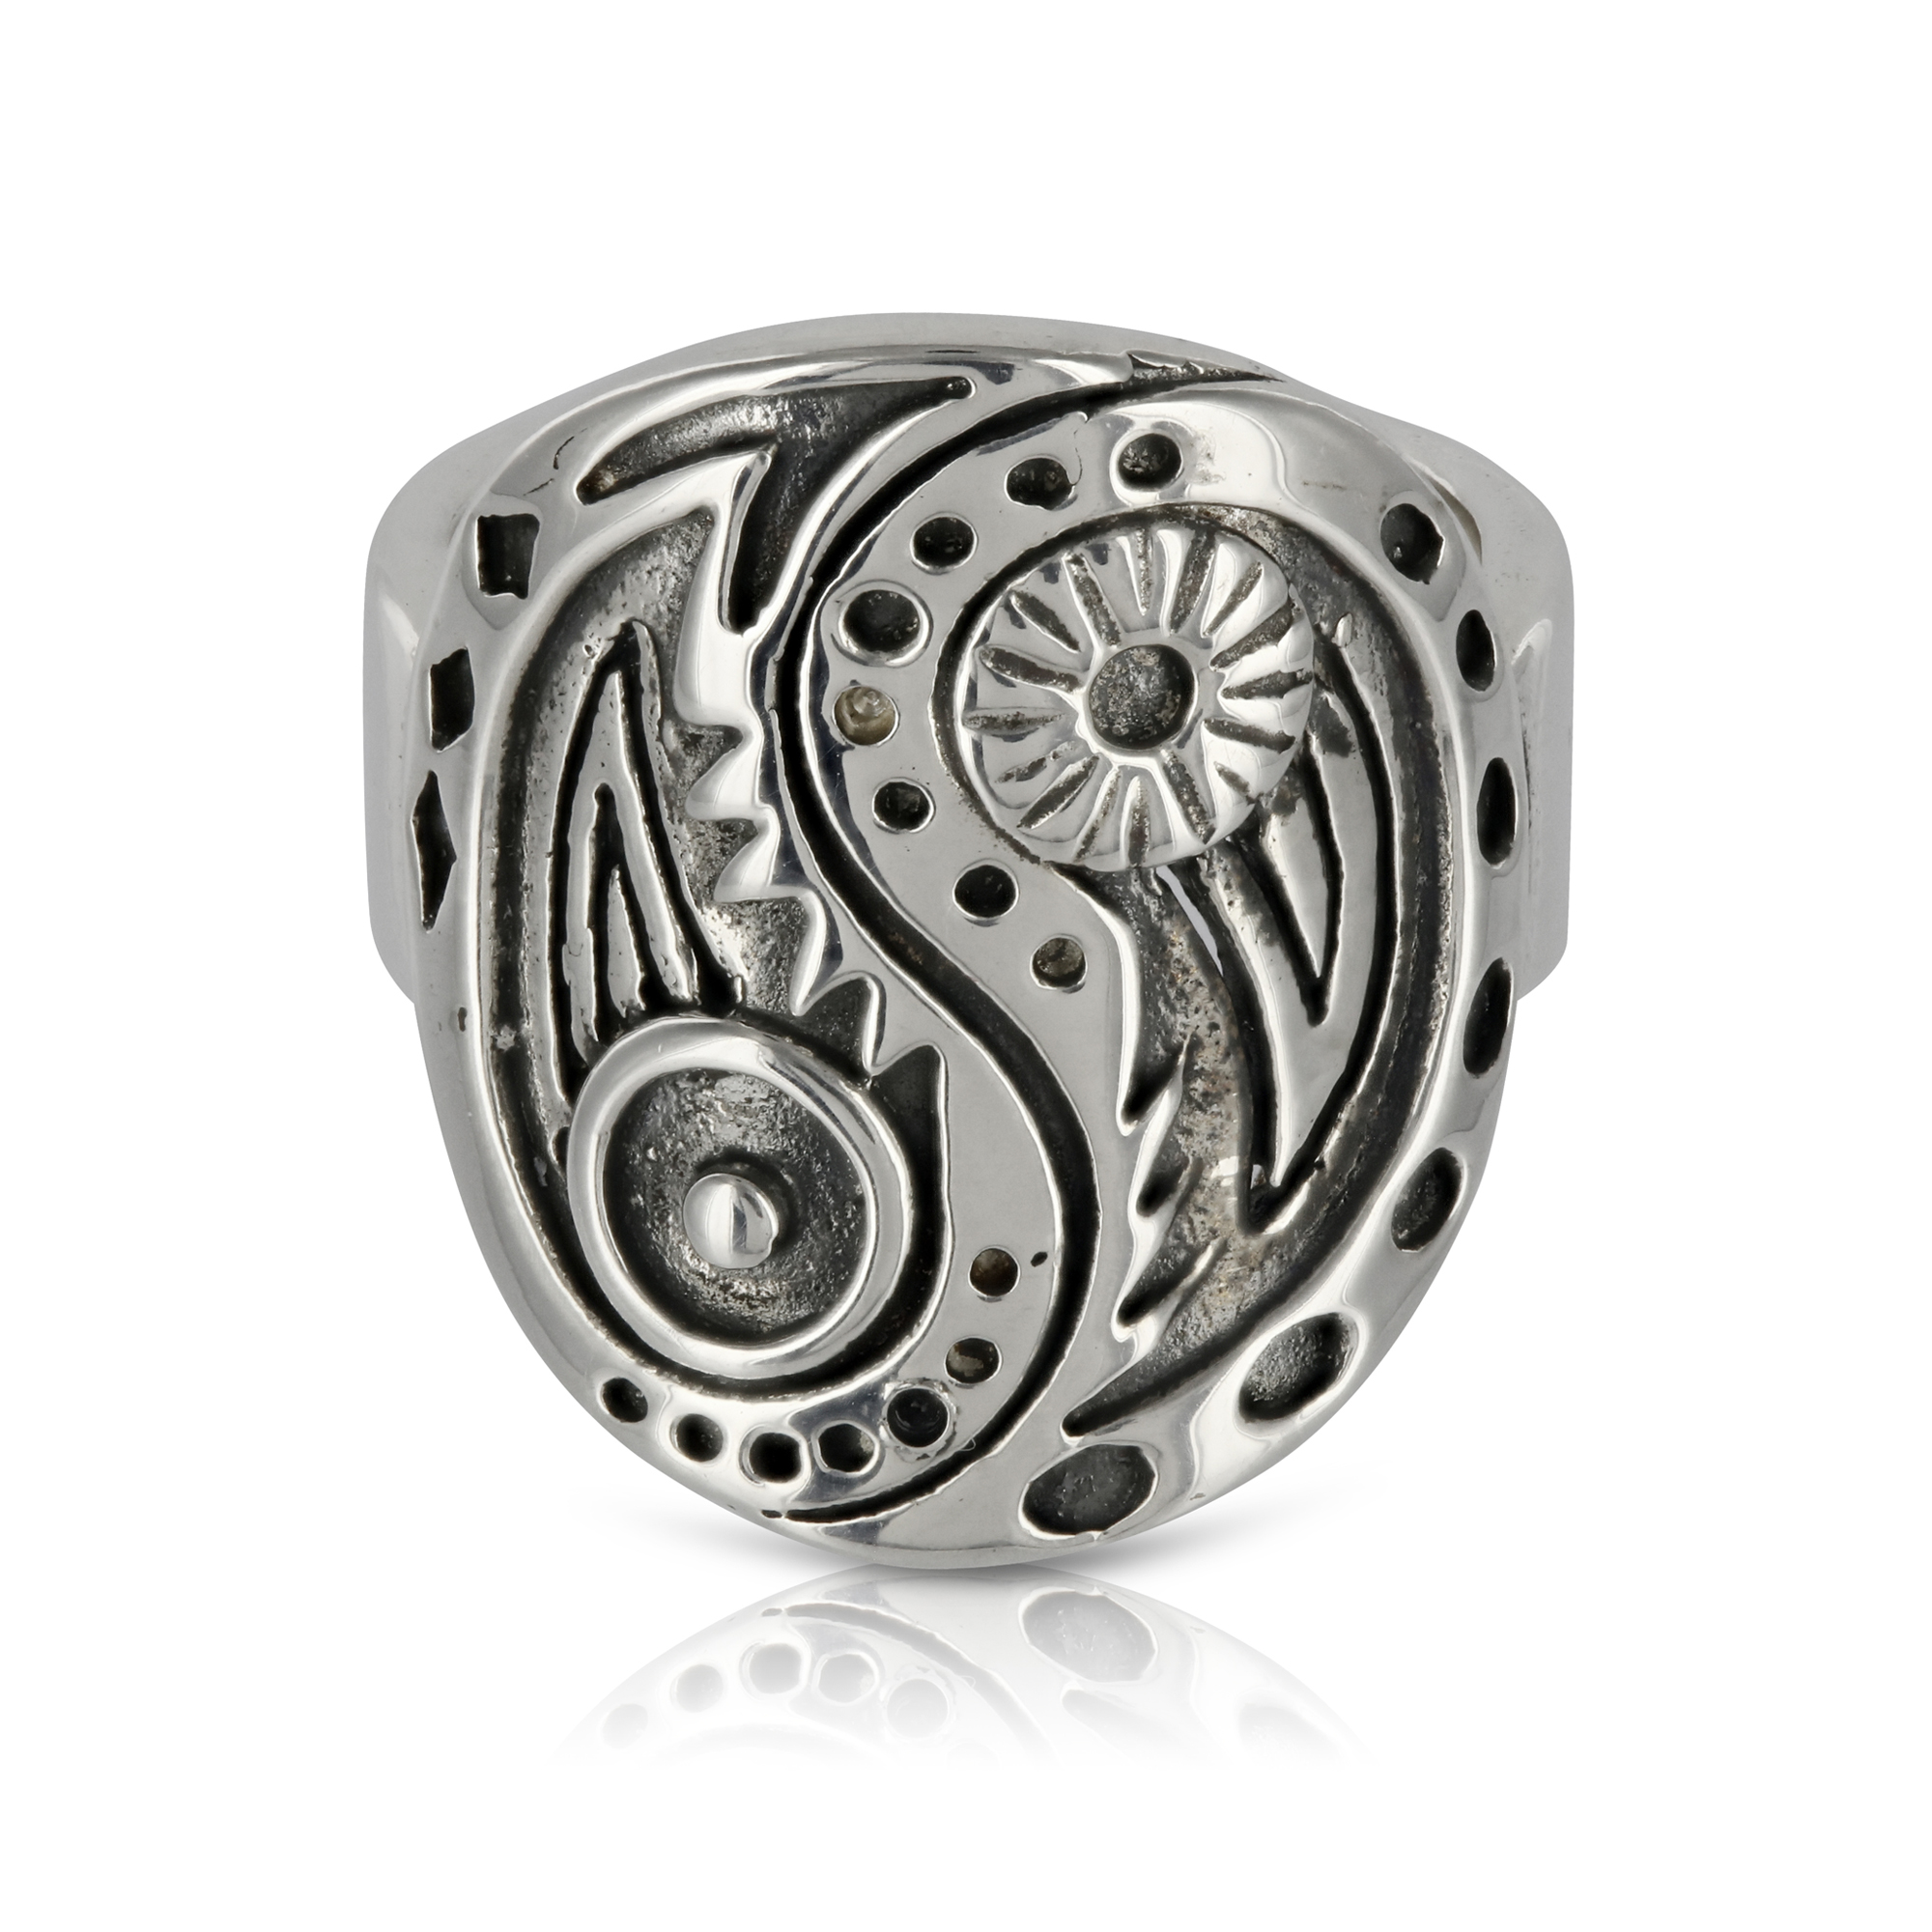 Based on the ancient Chinese symbol for balance, this beautifully balanced design includes delicate eye detail that could have the added benefit of warding off evil.